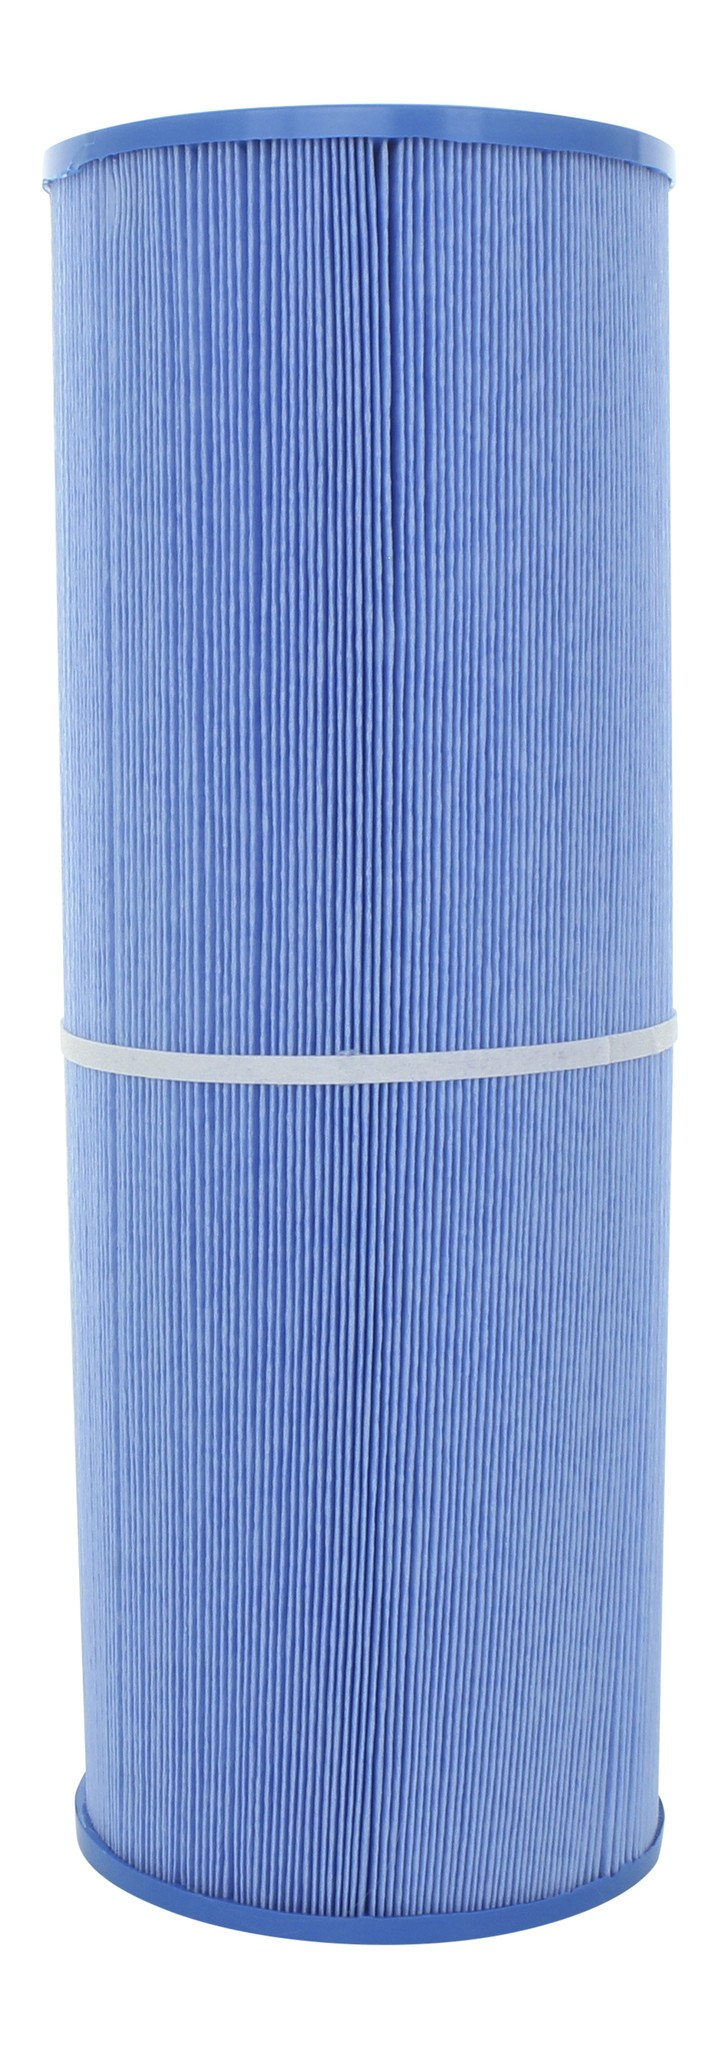 Replaces Unicel C-5374RA, Pleatco PLBS75M - Antimicrobial Pool & Spa Filter Cartridge-Filter Cartridge-FilterDeal.com